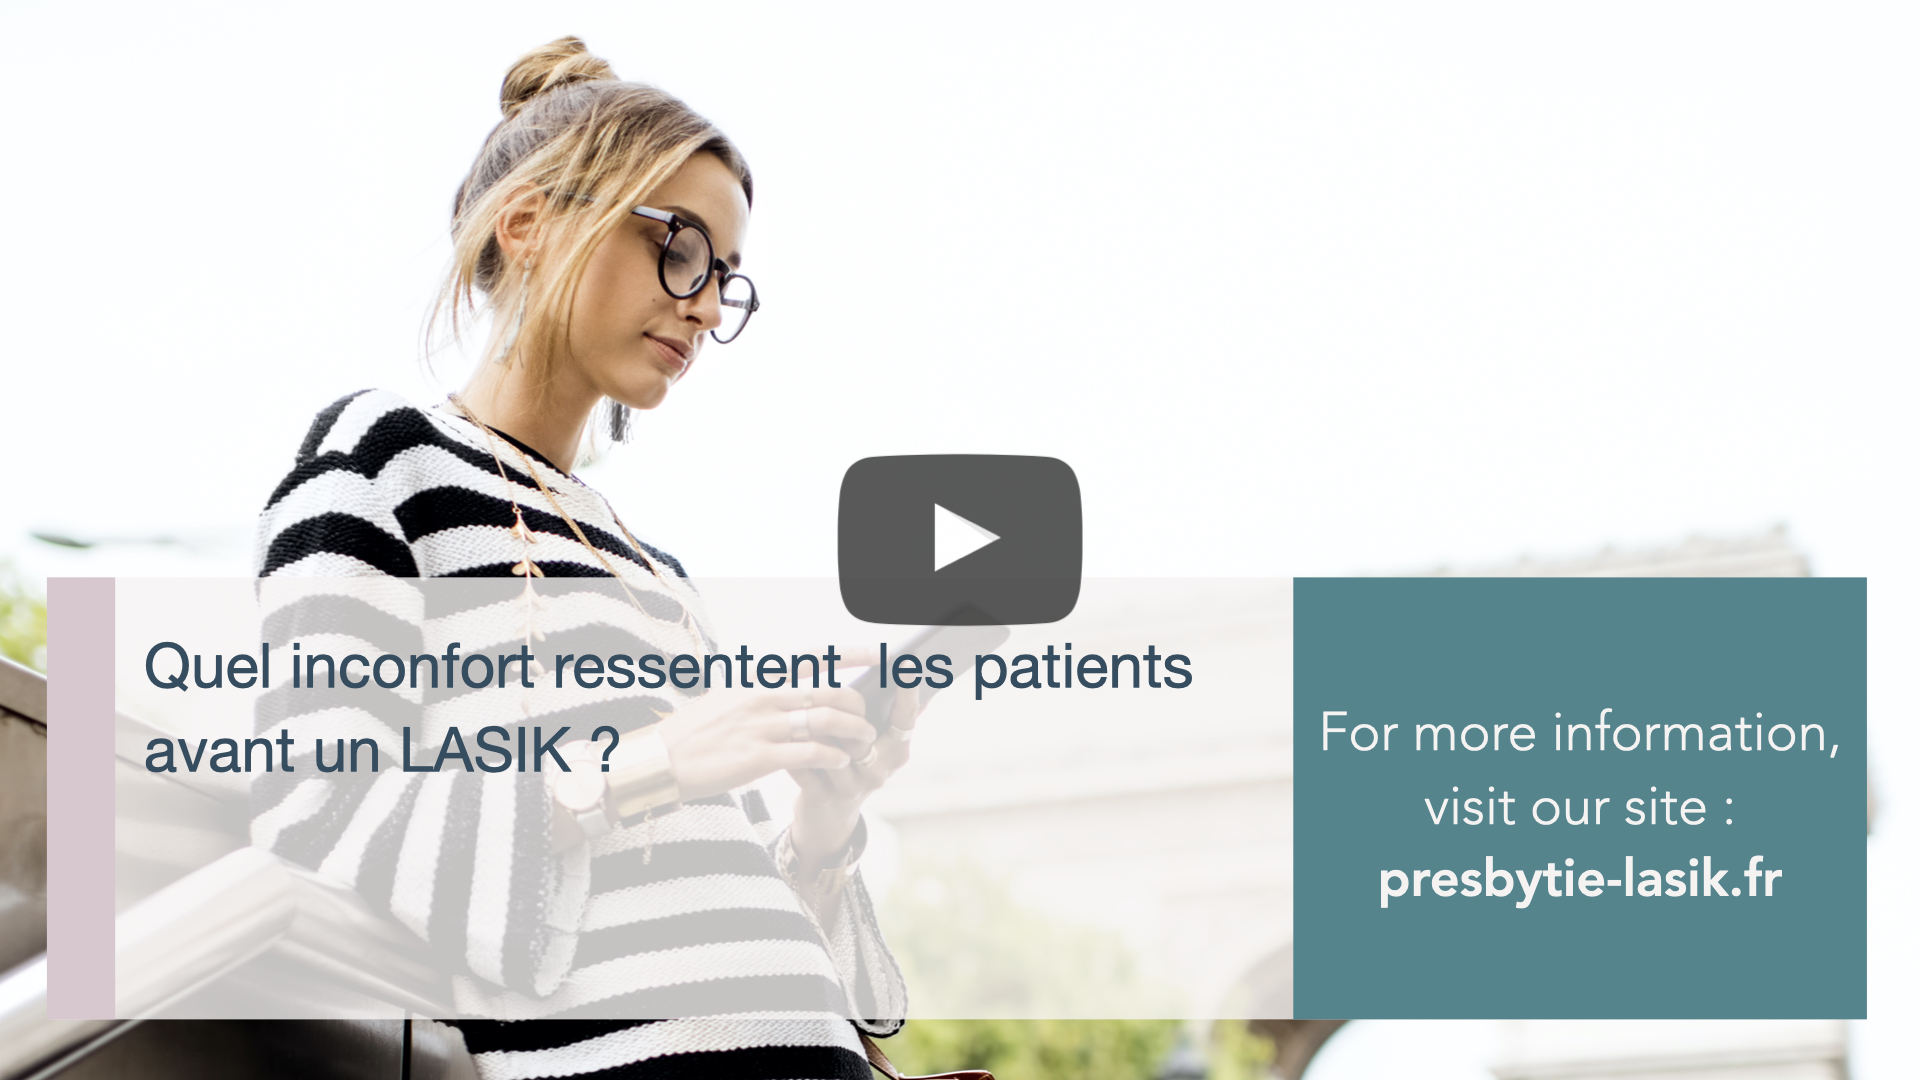 Quel incofort ressentent les patients avant un LASIK, LASIK Catherine Albou Ganem Clinique de la Vision Paris